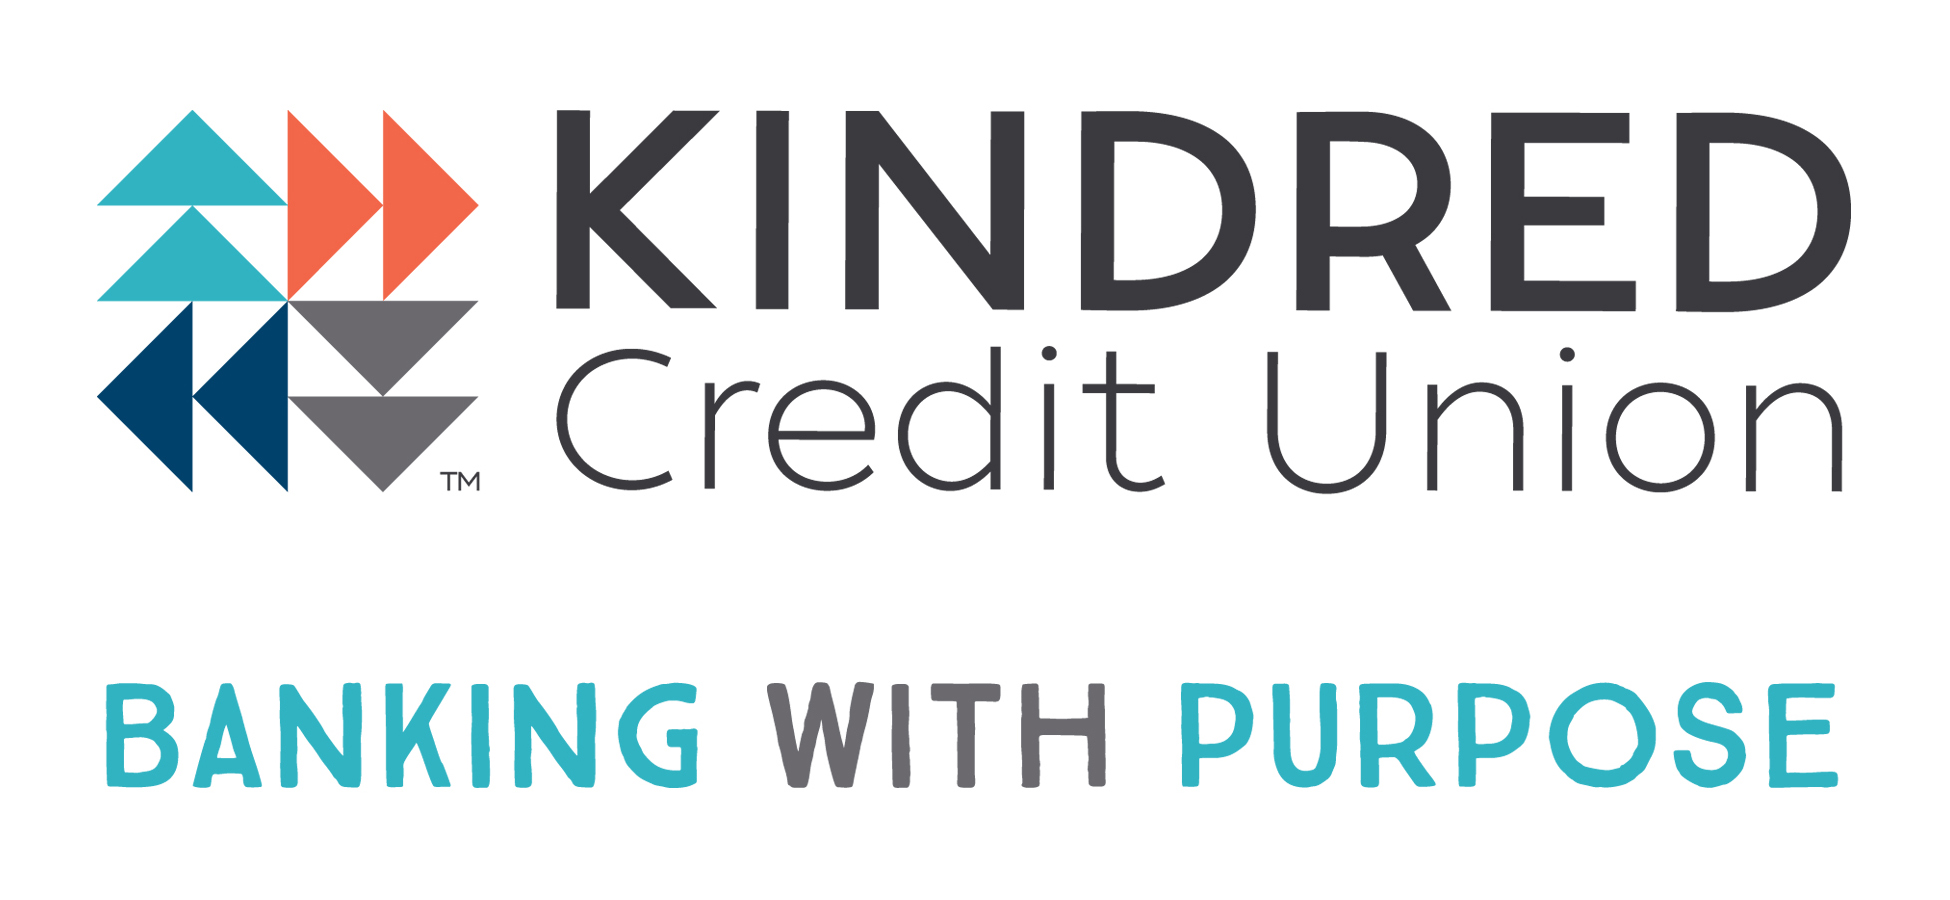 Thank you to our  Lead Production Sponsor ,  Kindred Credit Union .